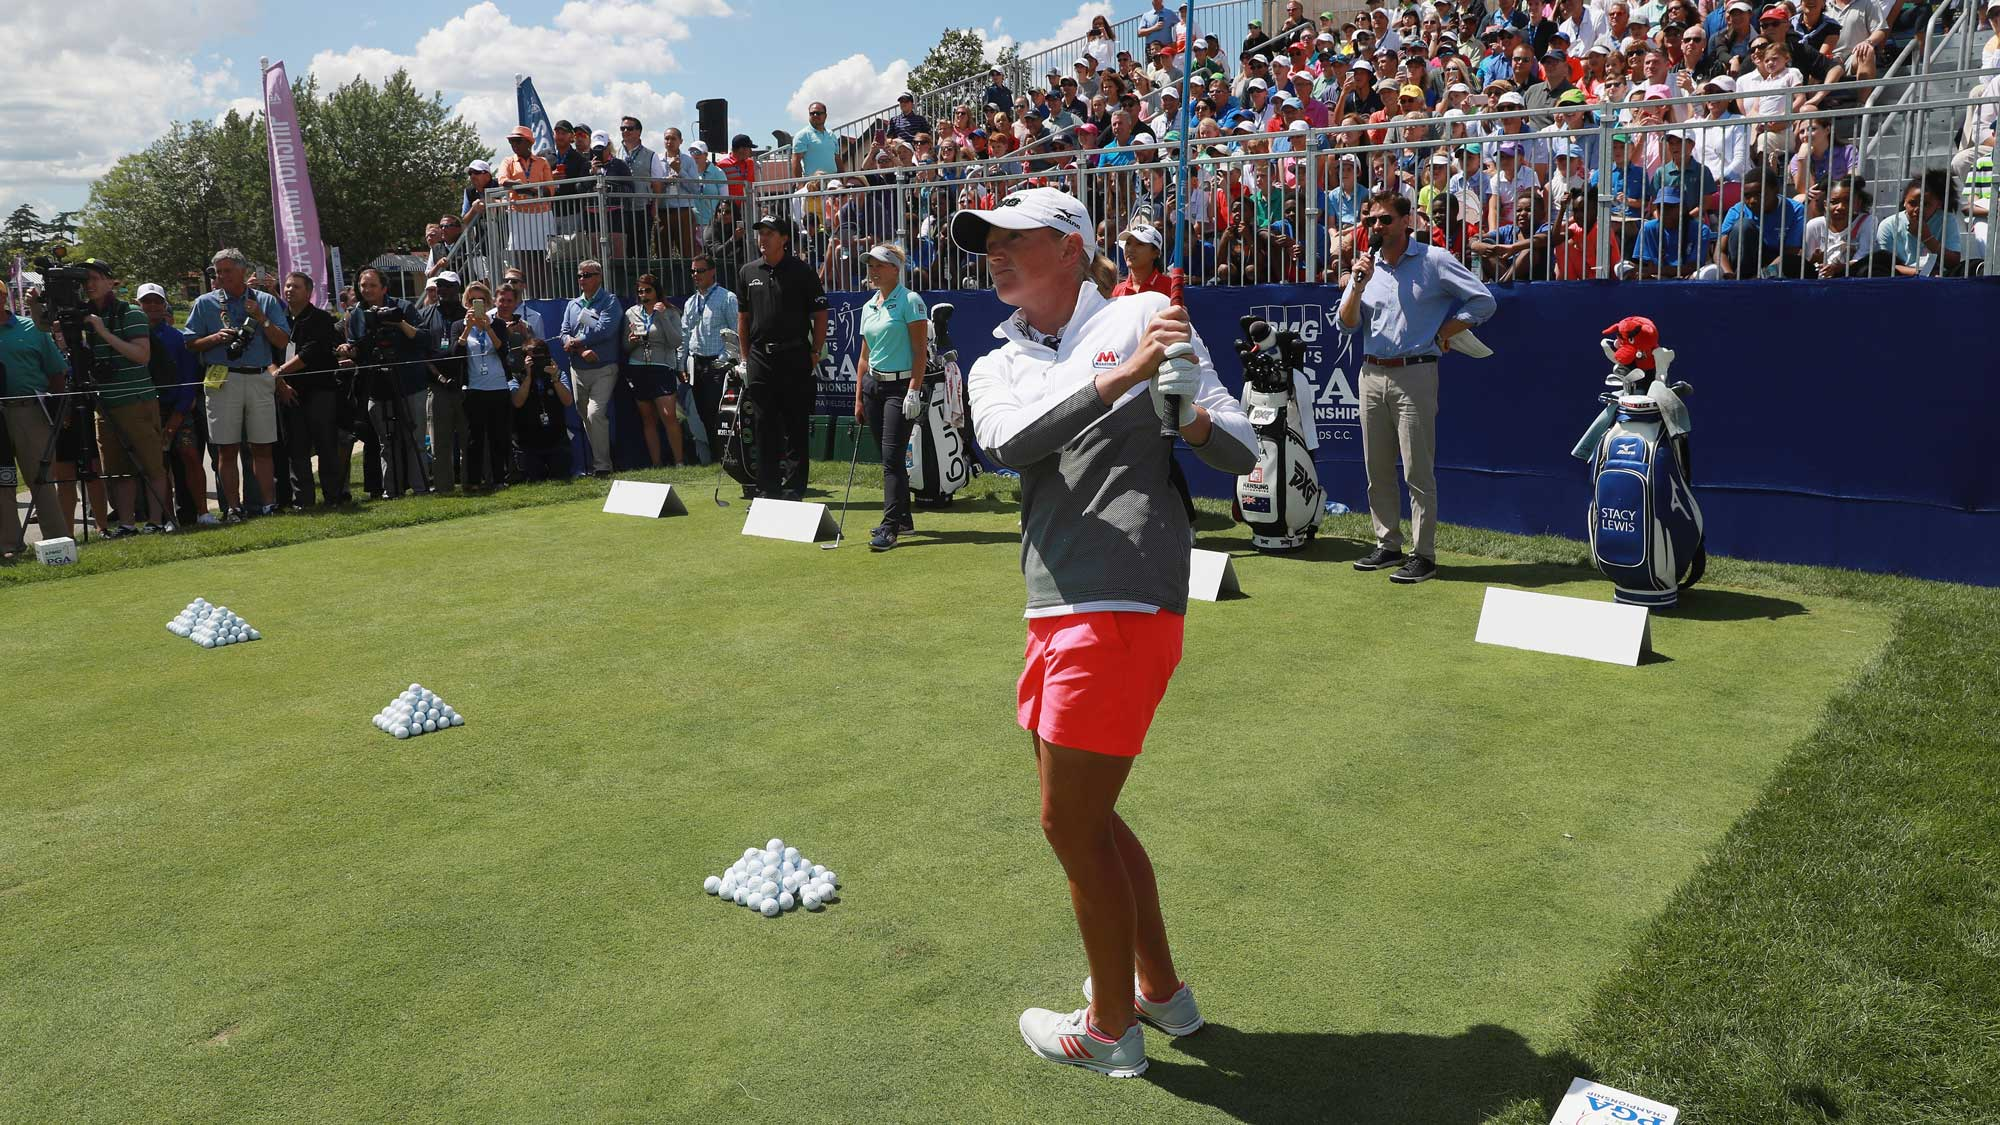 Stacy Lewis hits a shot during a a skills challenge prior to the start of the 2017 KPMG Women's PGA Championship